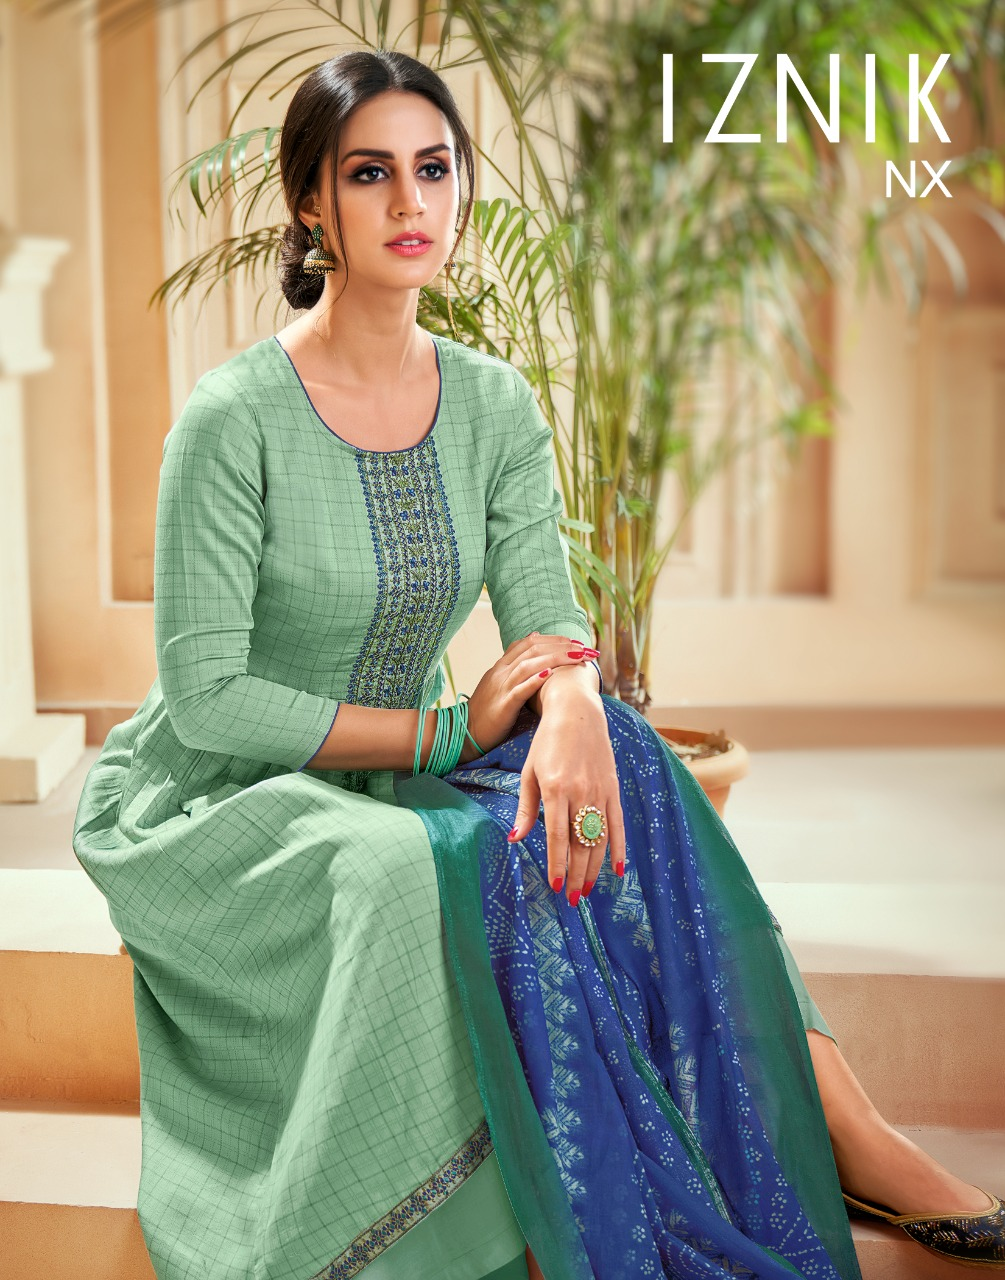 Angroop Plus Iznik Nx Salwar Suit Wholesale Catalog 6 Pcs 7 - Angroop Plus Iznik Nx Salwar Suit Wholesale Catalog 6 Pcs